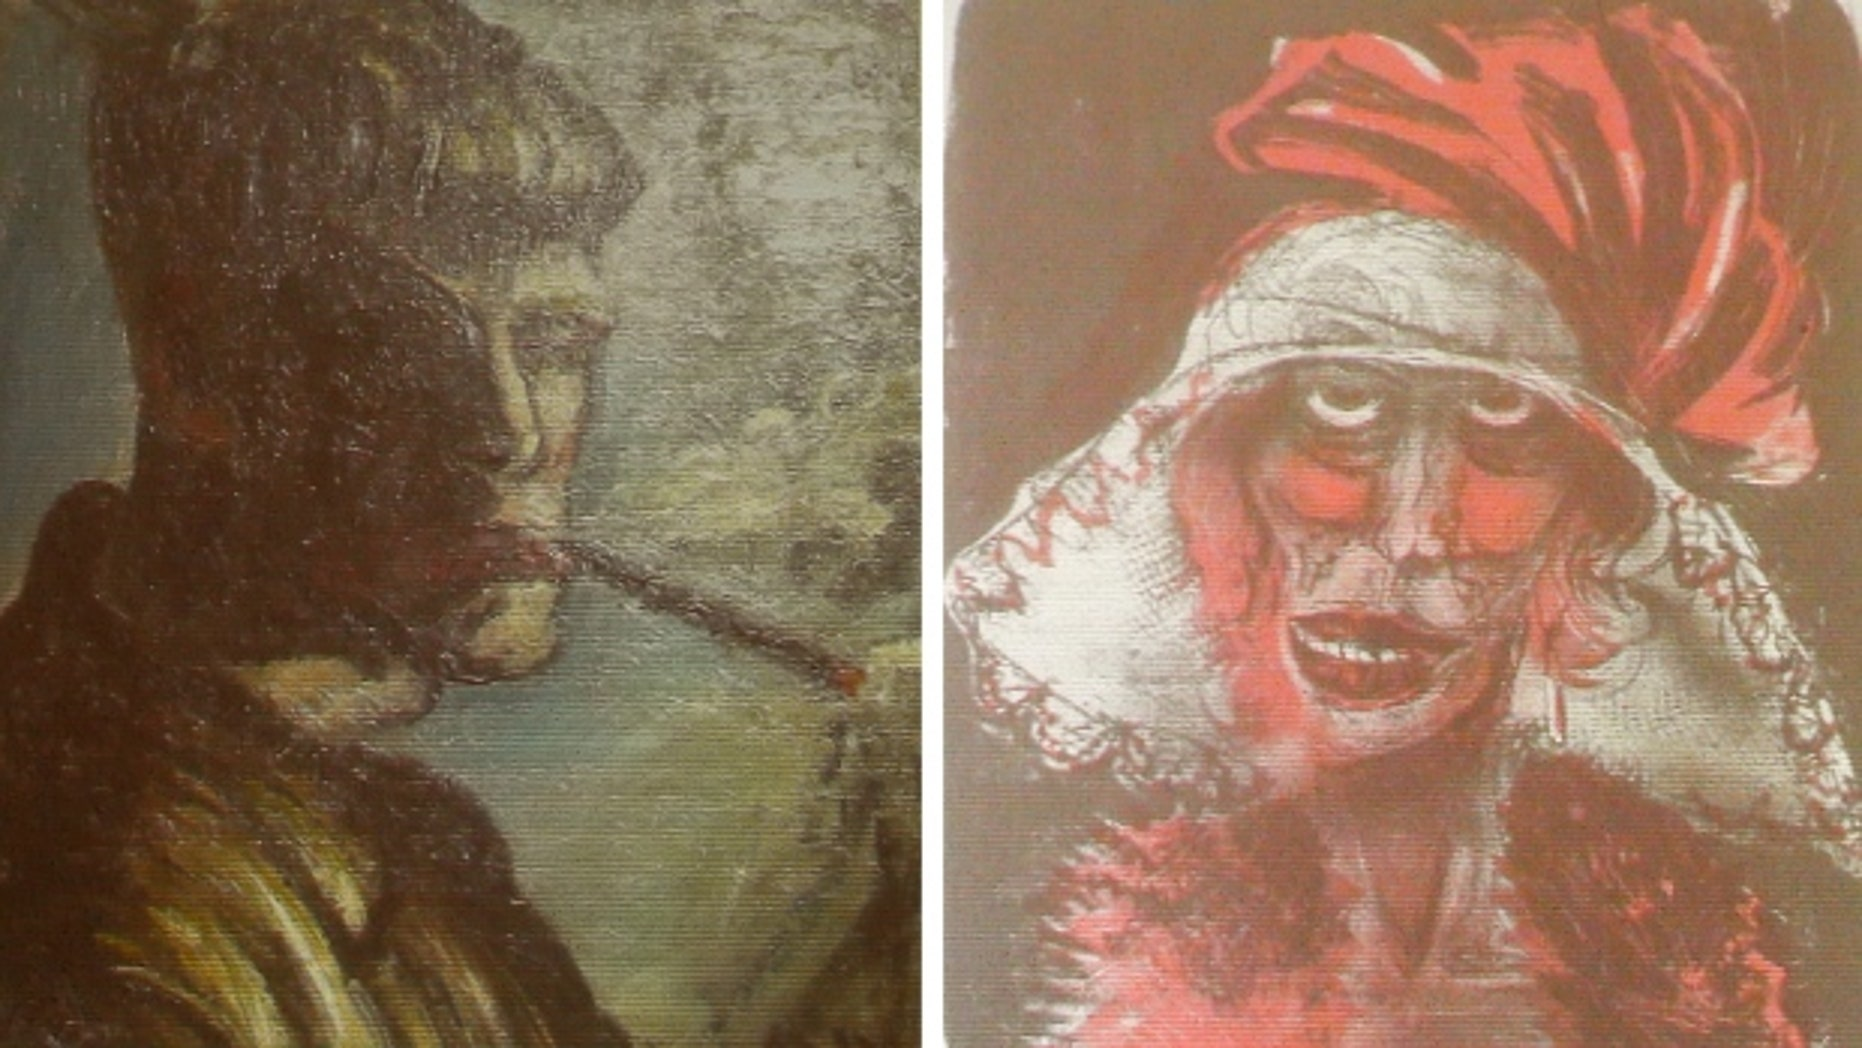 Two formerly unknown paintings by German artist Otto Dix were among the artworks seized in a Munich flat owned by Cornelius Gurlitt, the reclusive elderly son of war-time art dealer Hildebrand Gurlitt, who was authorized by the Nazis to sell art the they stole. (Michael Dalder/Reuters)